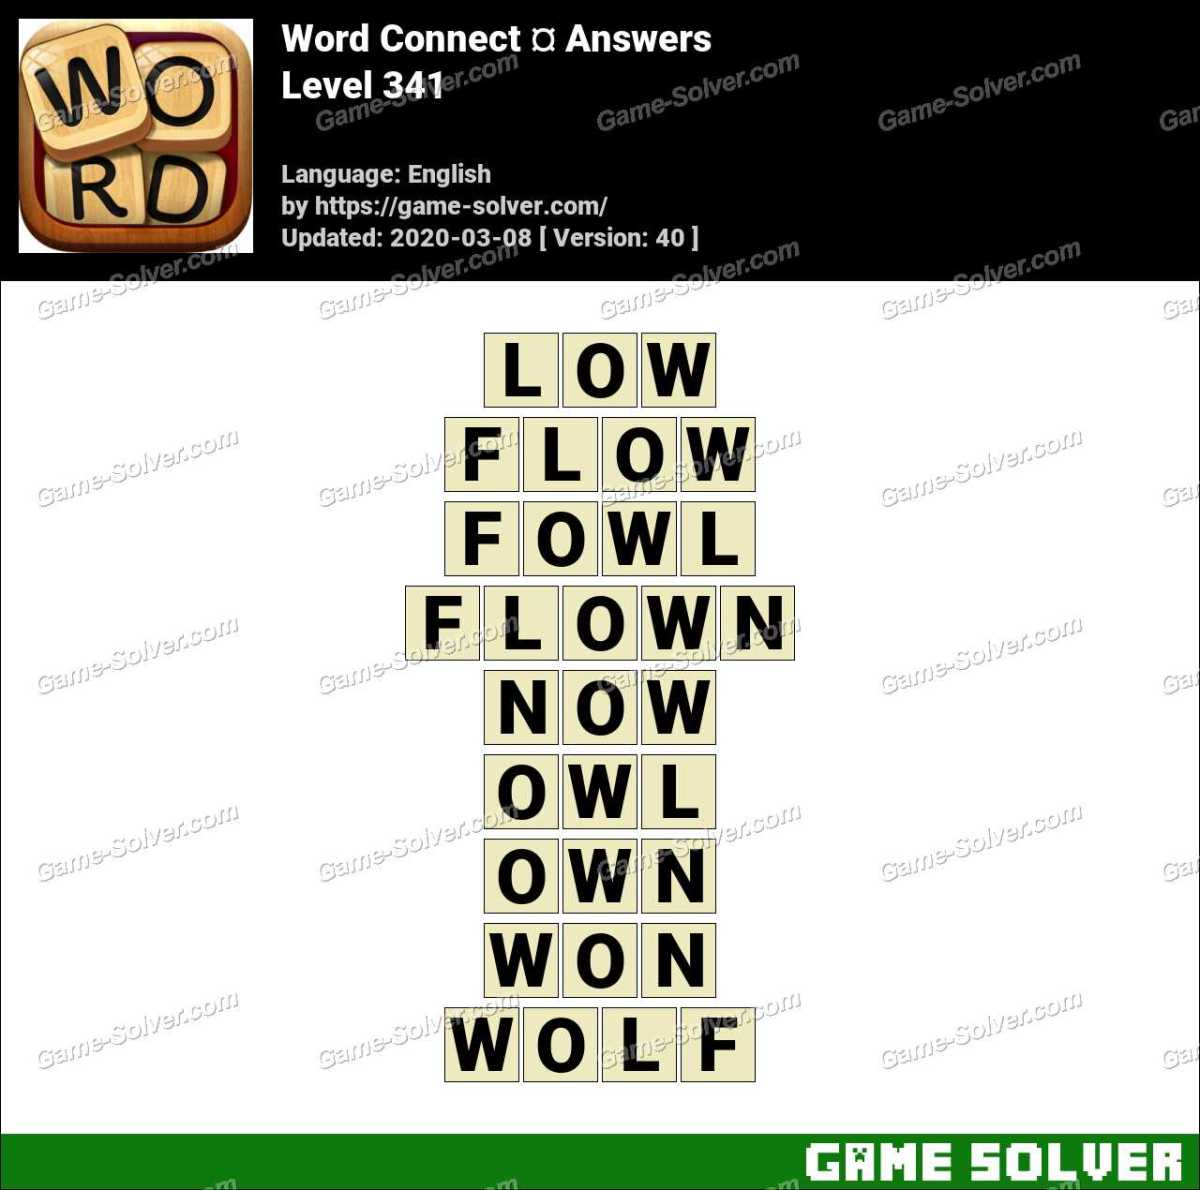 Word Connect Level 341 Answers